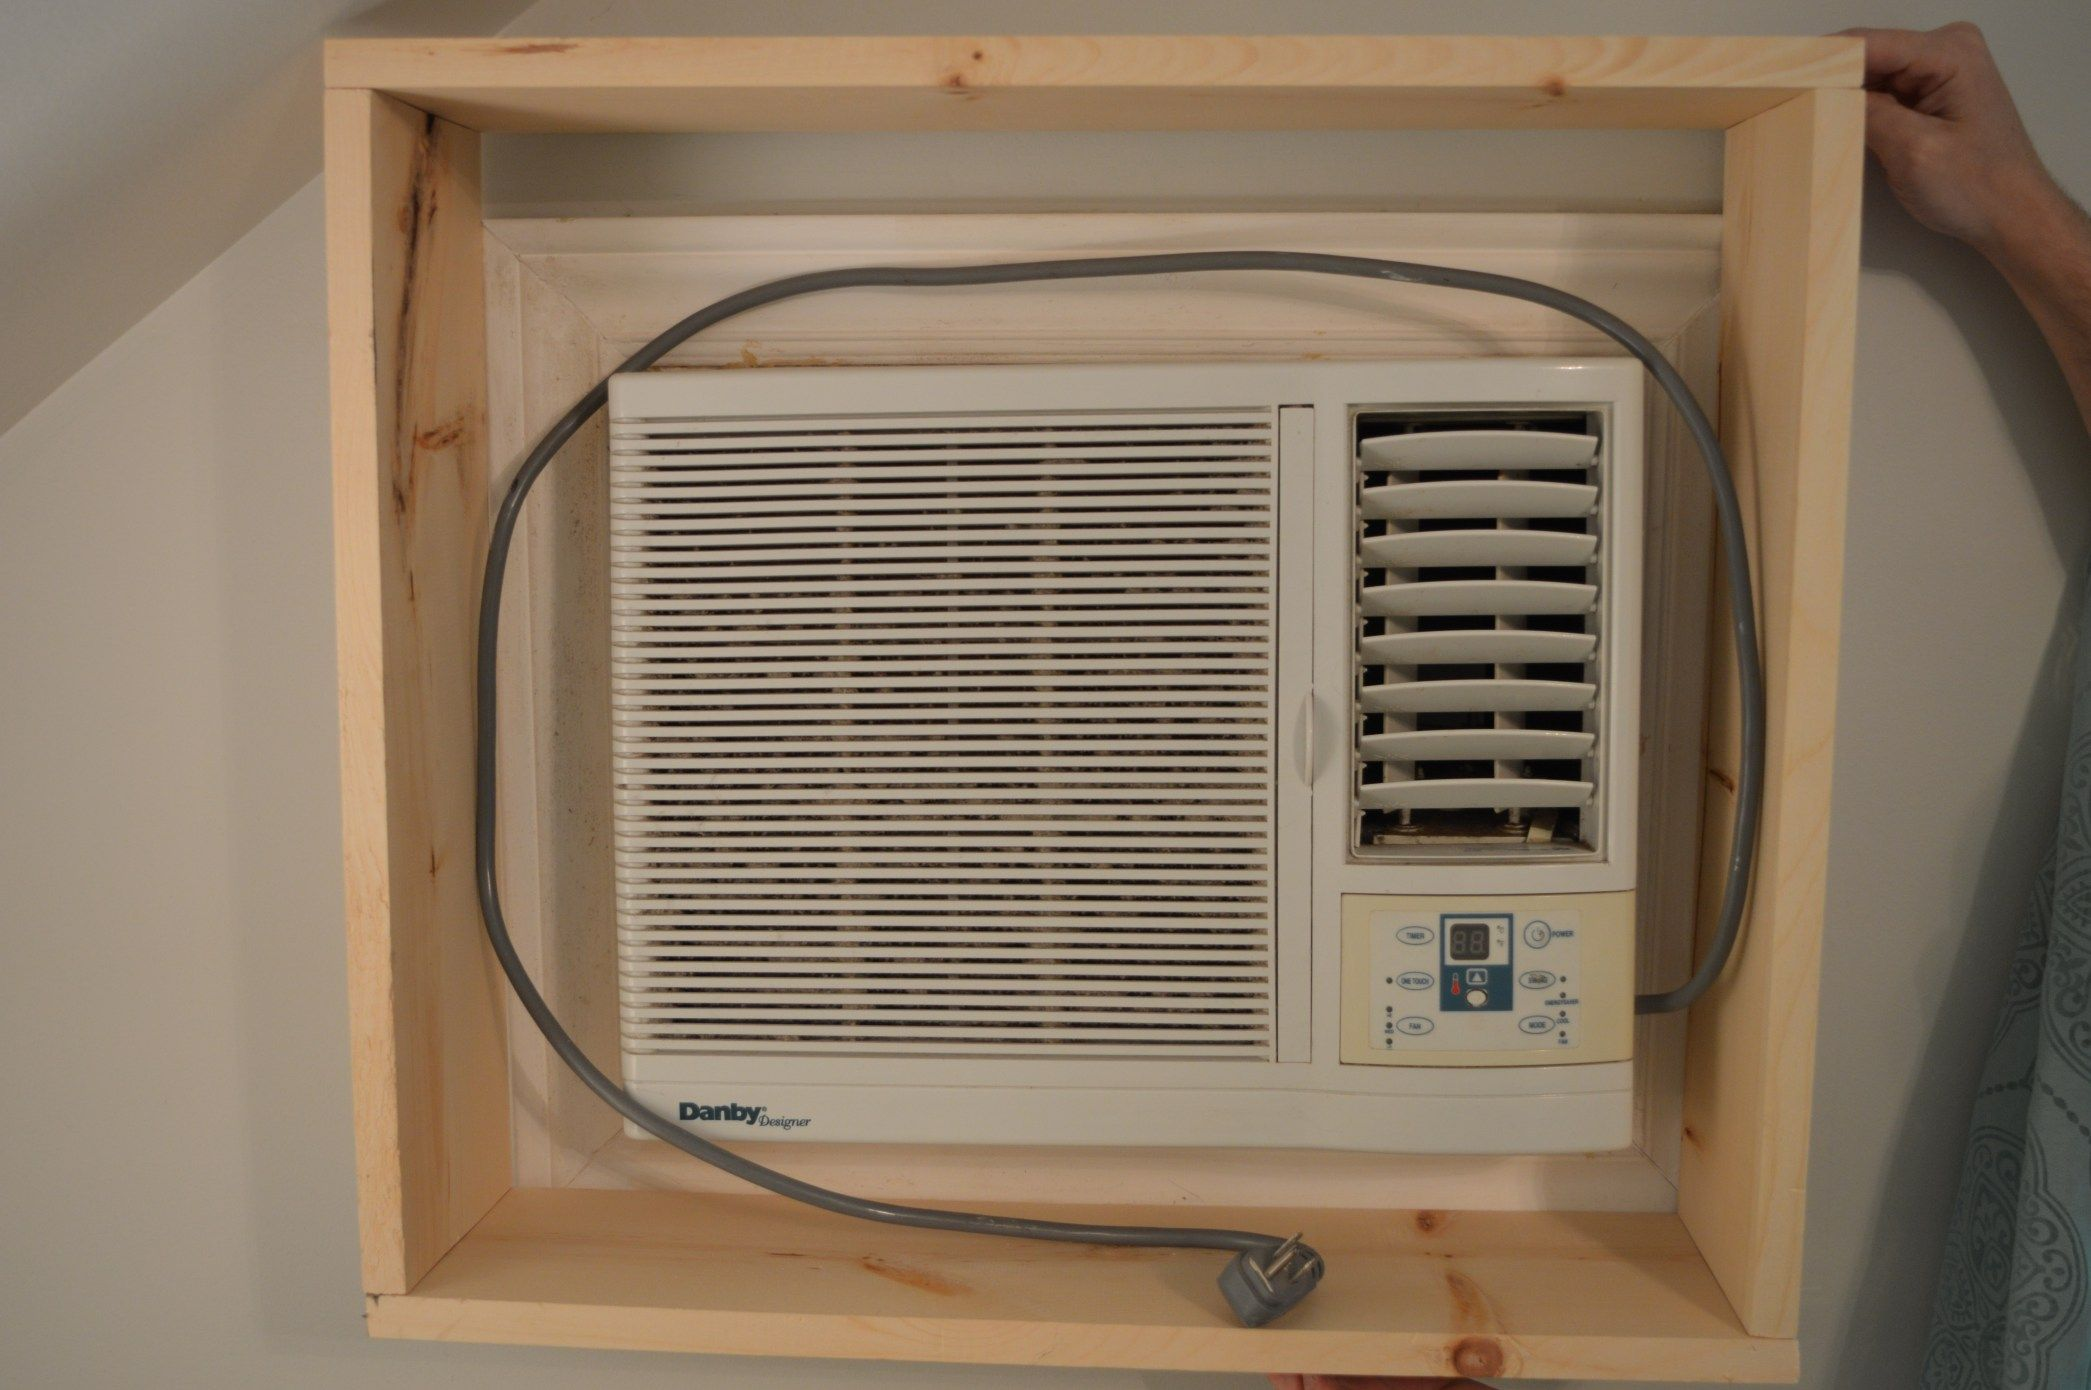 DIY A/C Unit Cover | Diy air conditioner, Air conditioner ...